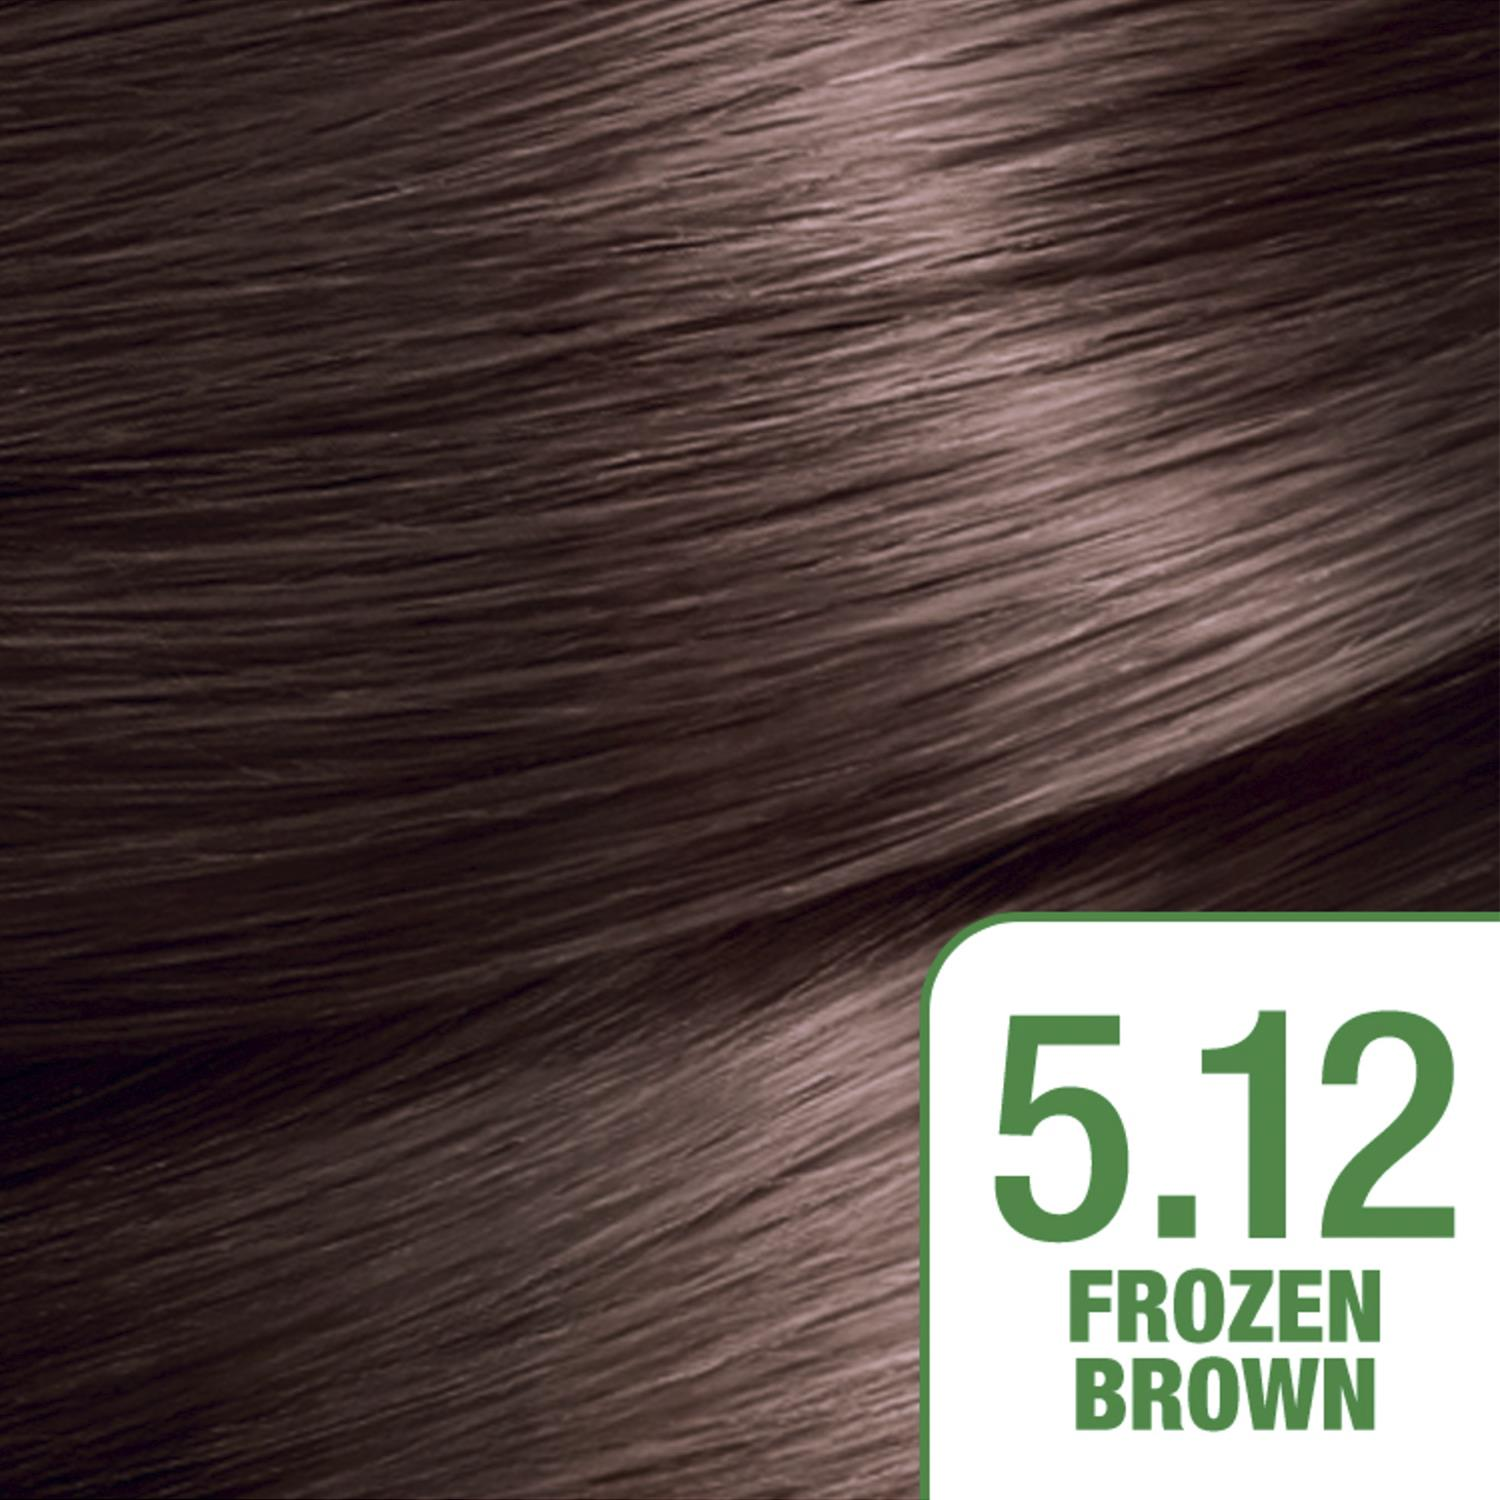 thumbnail 139 - 3 Pack Garnier Nutrisse Permanent Hair Dye With Different Shades